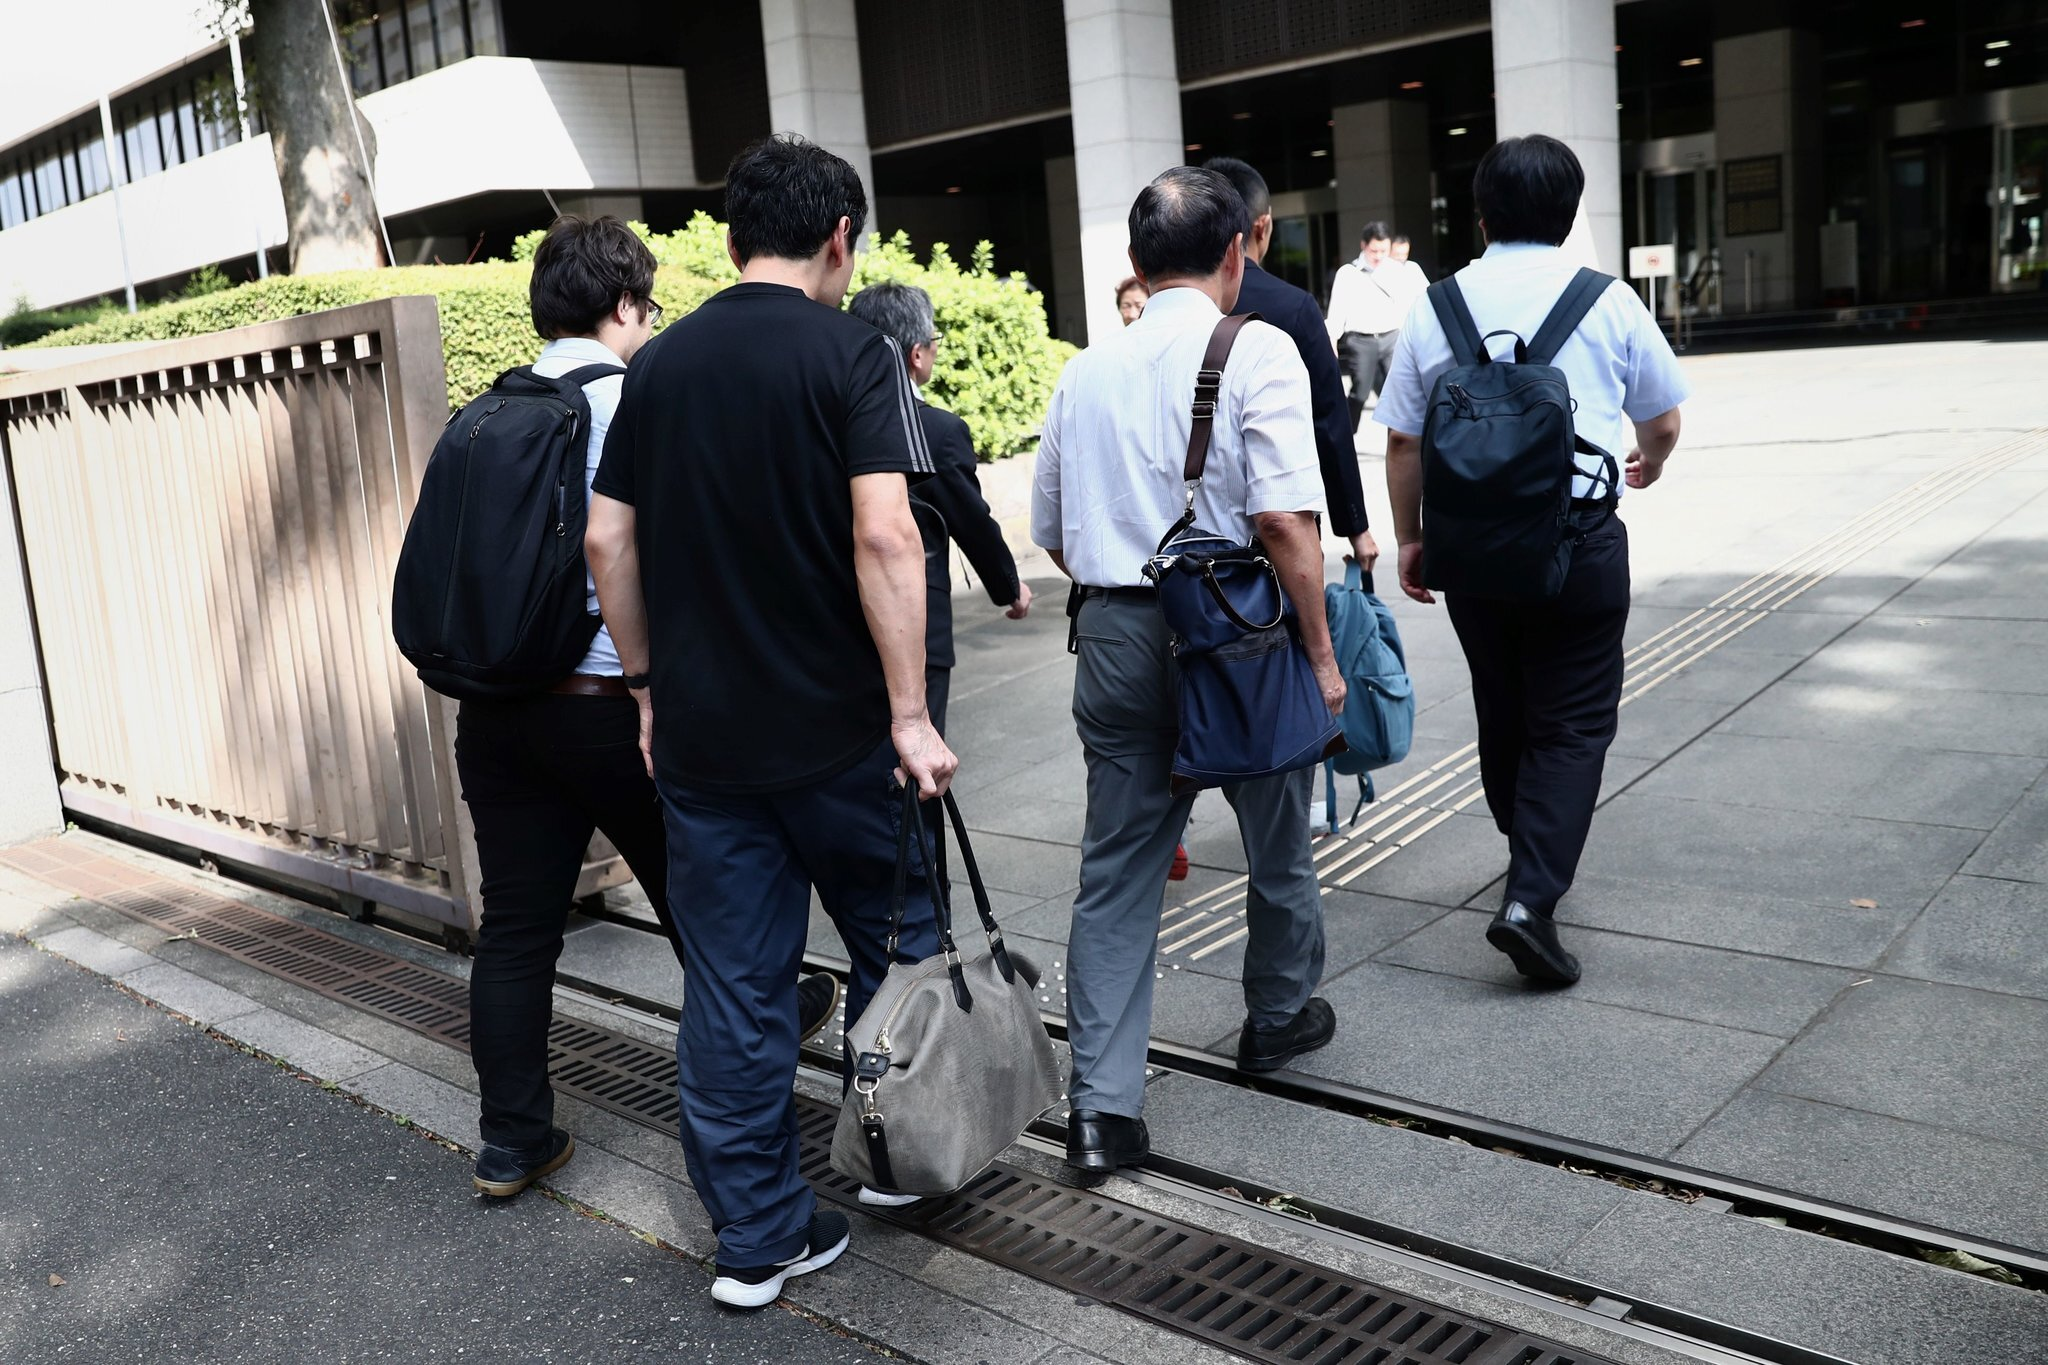 A Japanese man, who has taken paternity leave and been punished, entered a Tokyo court Thursday. Photo courtesy: Behrouz Mehri/Agence and France-Presse/Getty Images